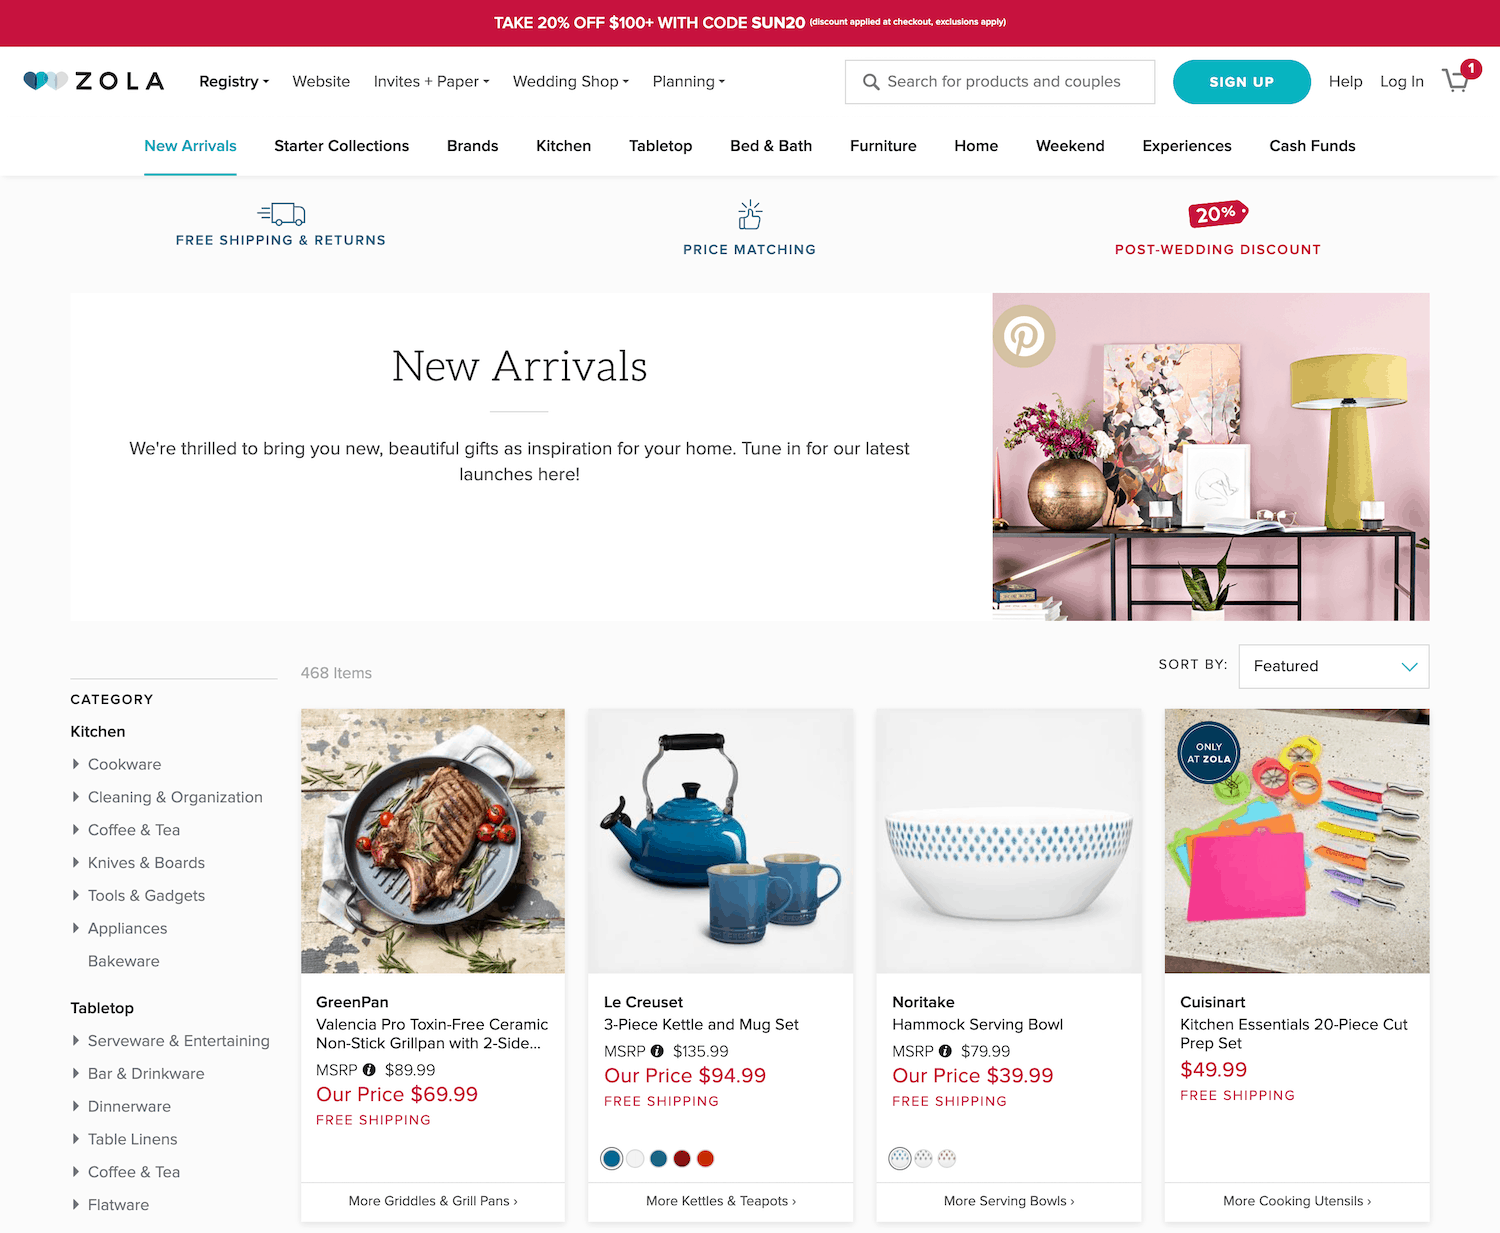 Zola's ecommerce landing page